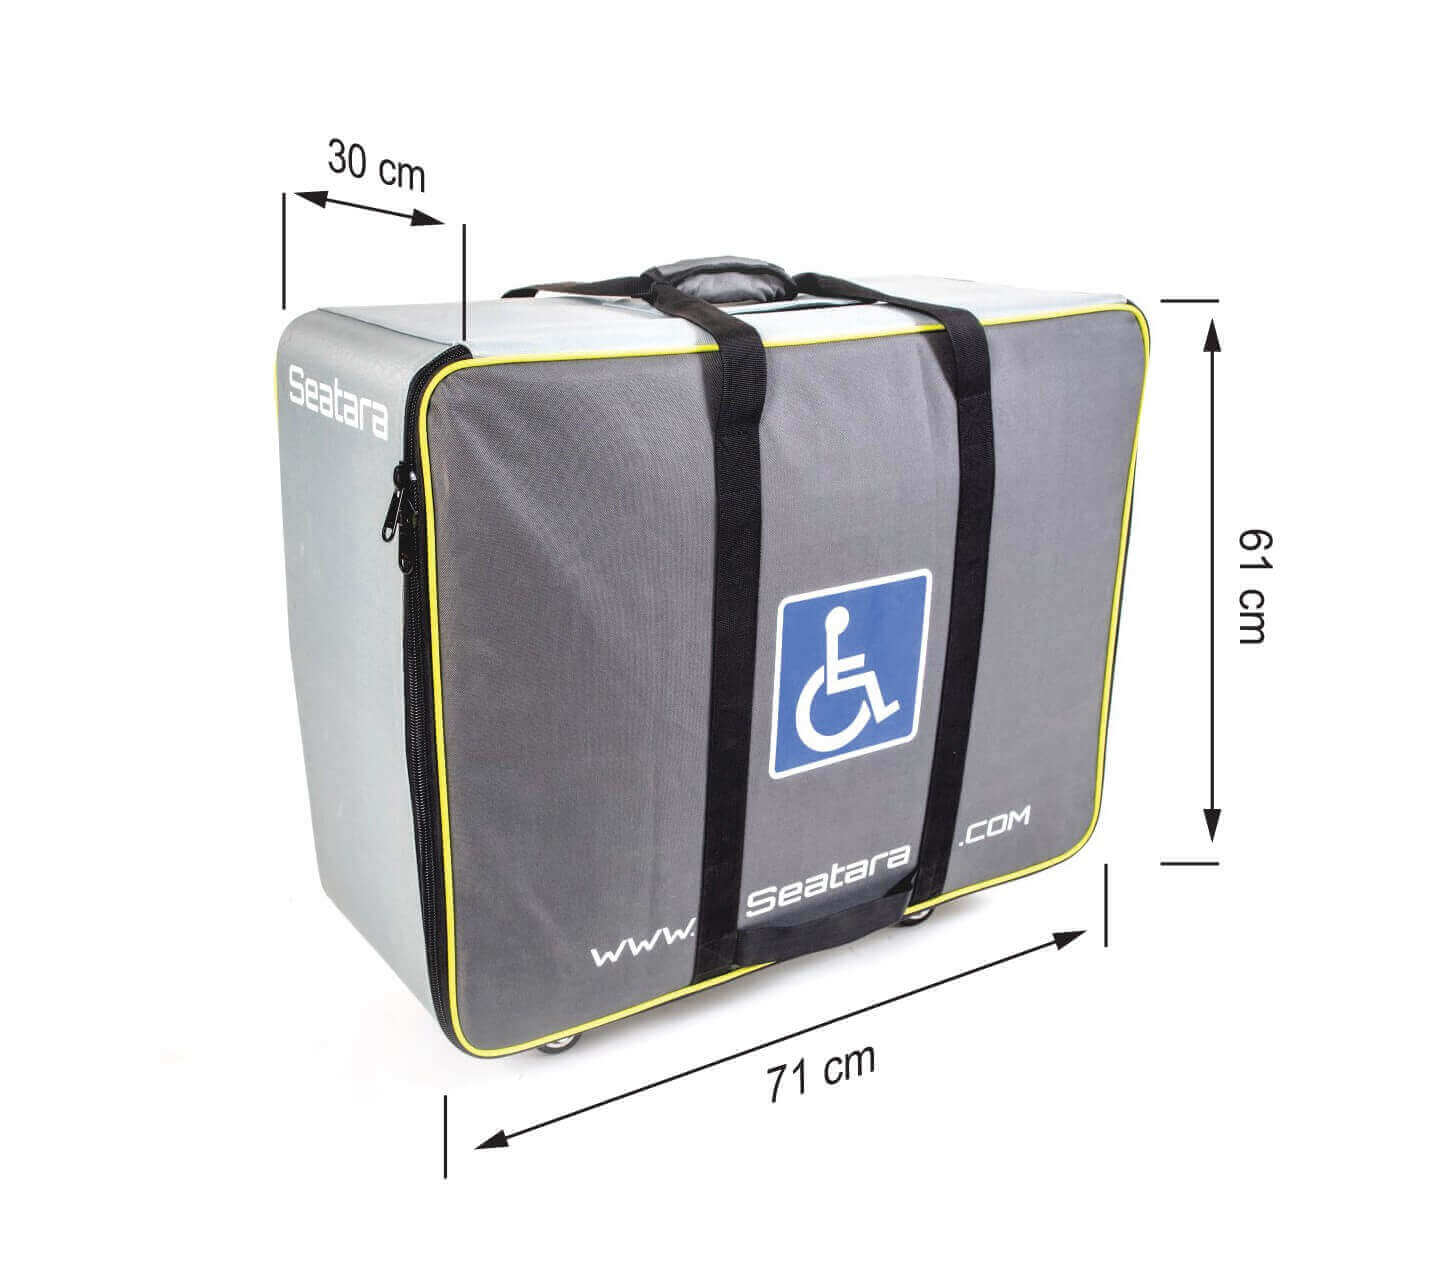 commode and shower chair for comfortable daily use, easy to assemble for occasional traveling